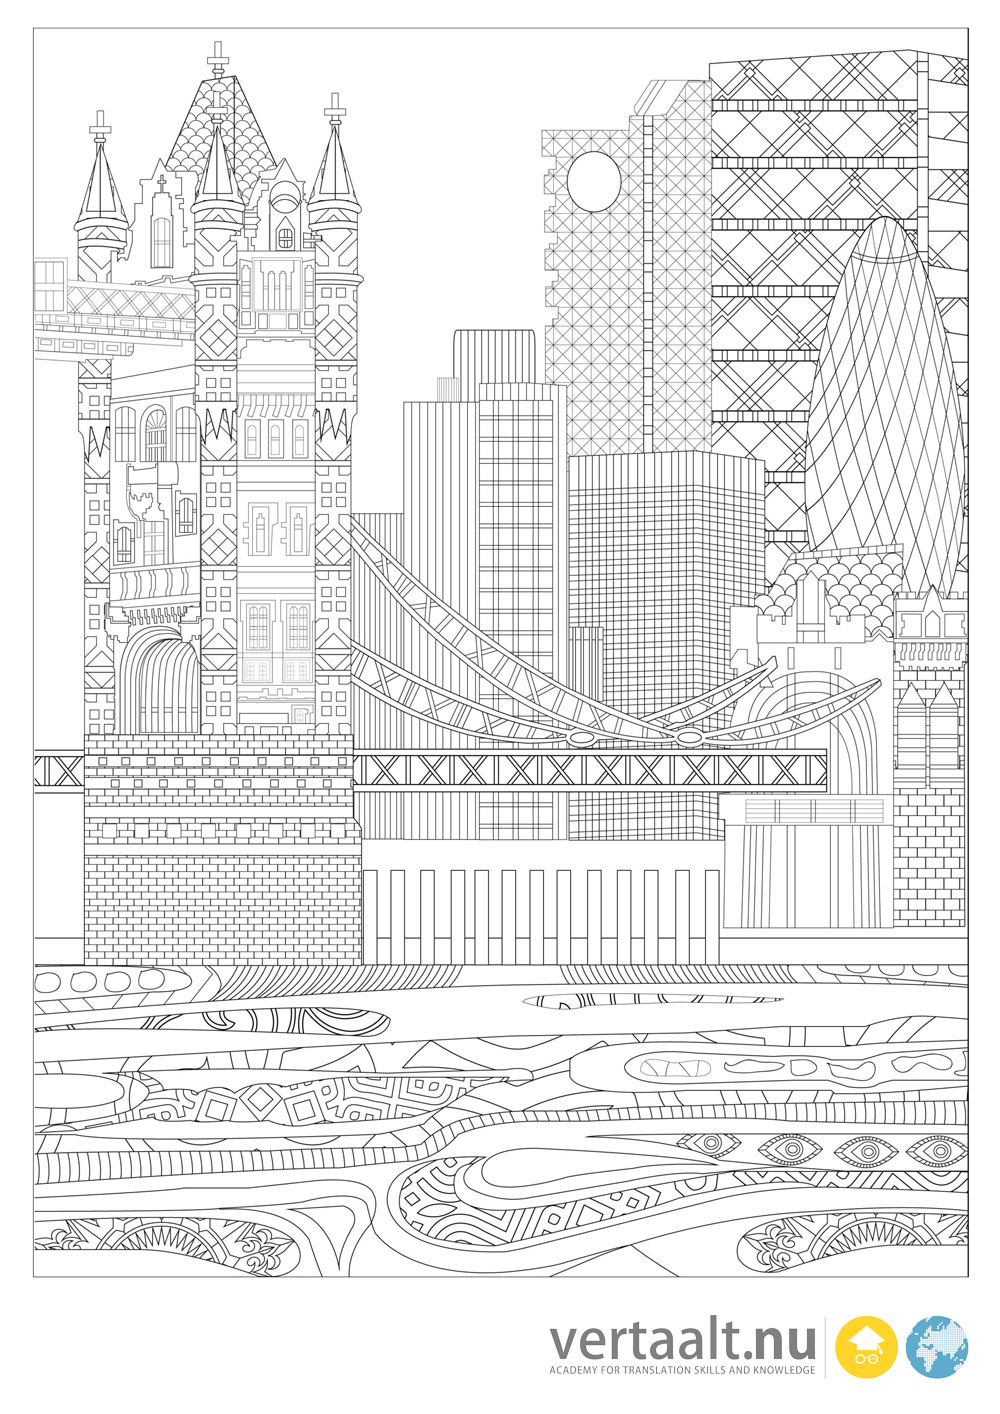 Five Free Translation Themed Adult Coloring Pages